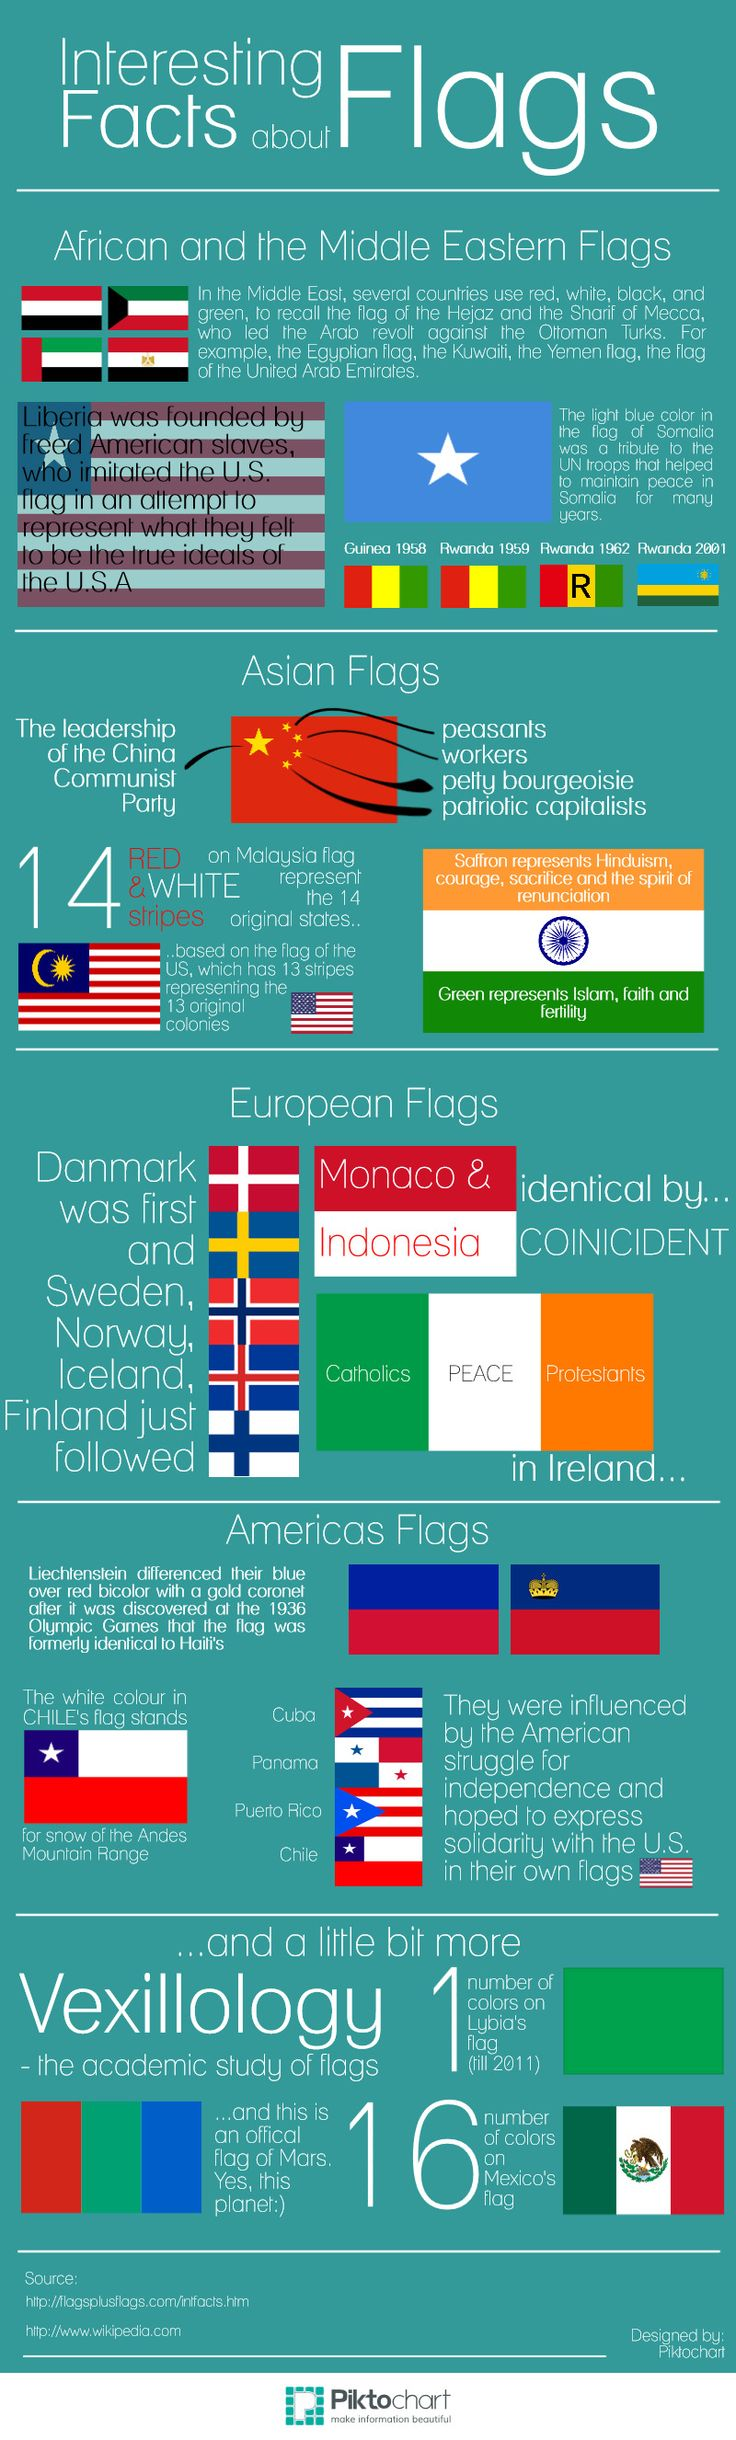 Interesting Facts About Flags by Piktochart